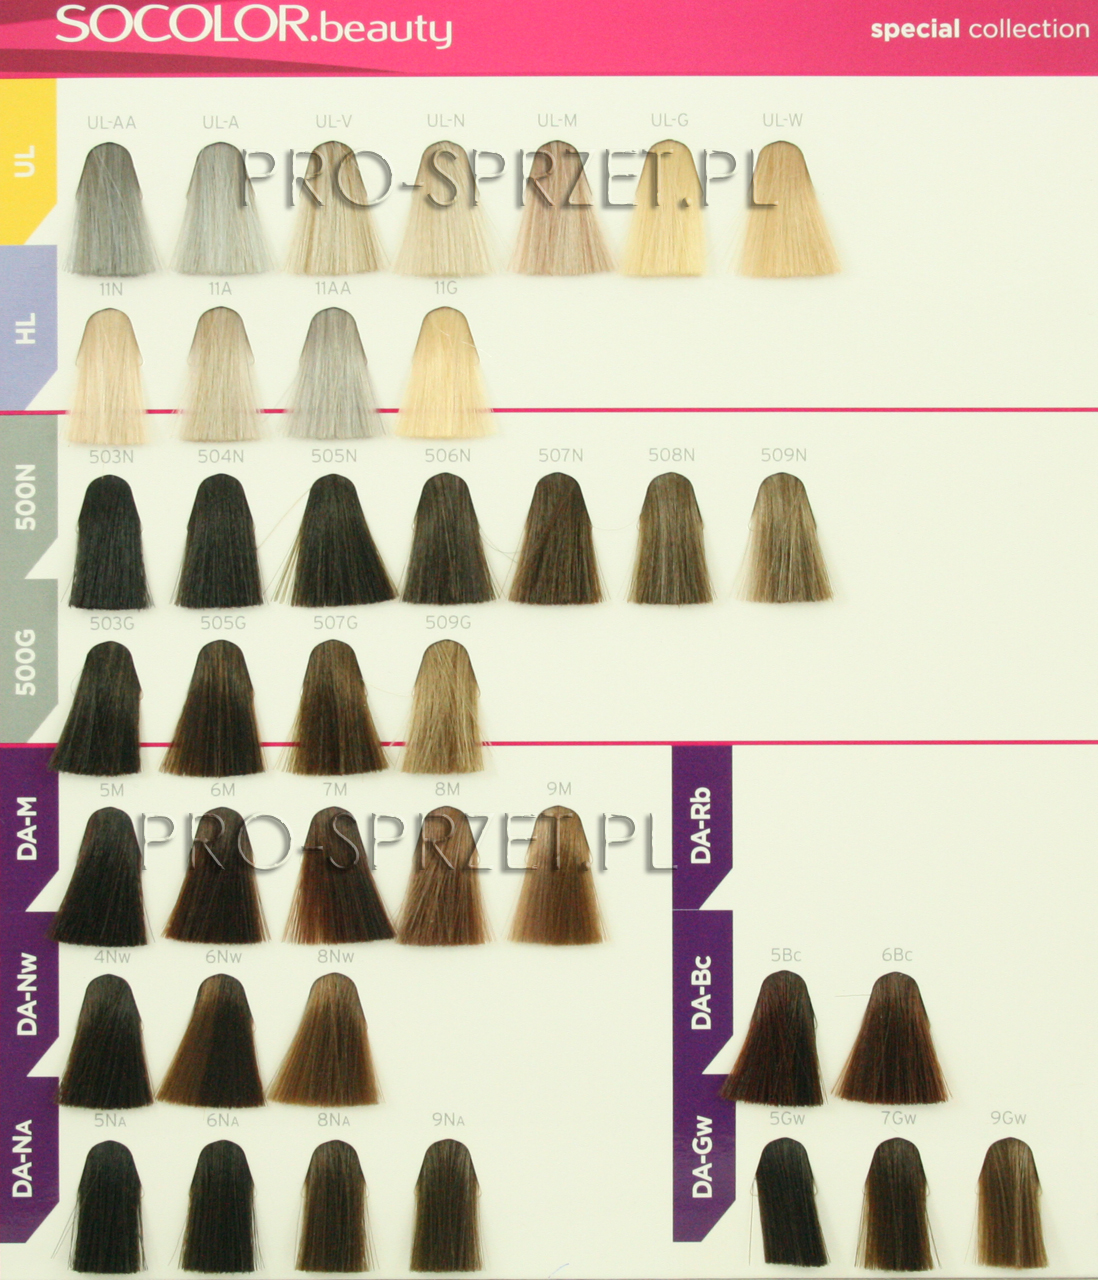 Matrix socolor color chart hair pinterest colors color charts and matrix colorsync swatch book 2012 color sync hair swatches dark brown hairs nvjuhfo Images